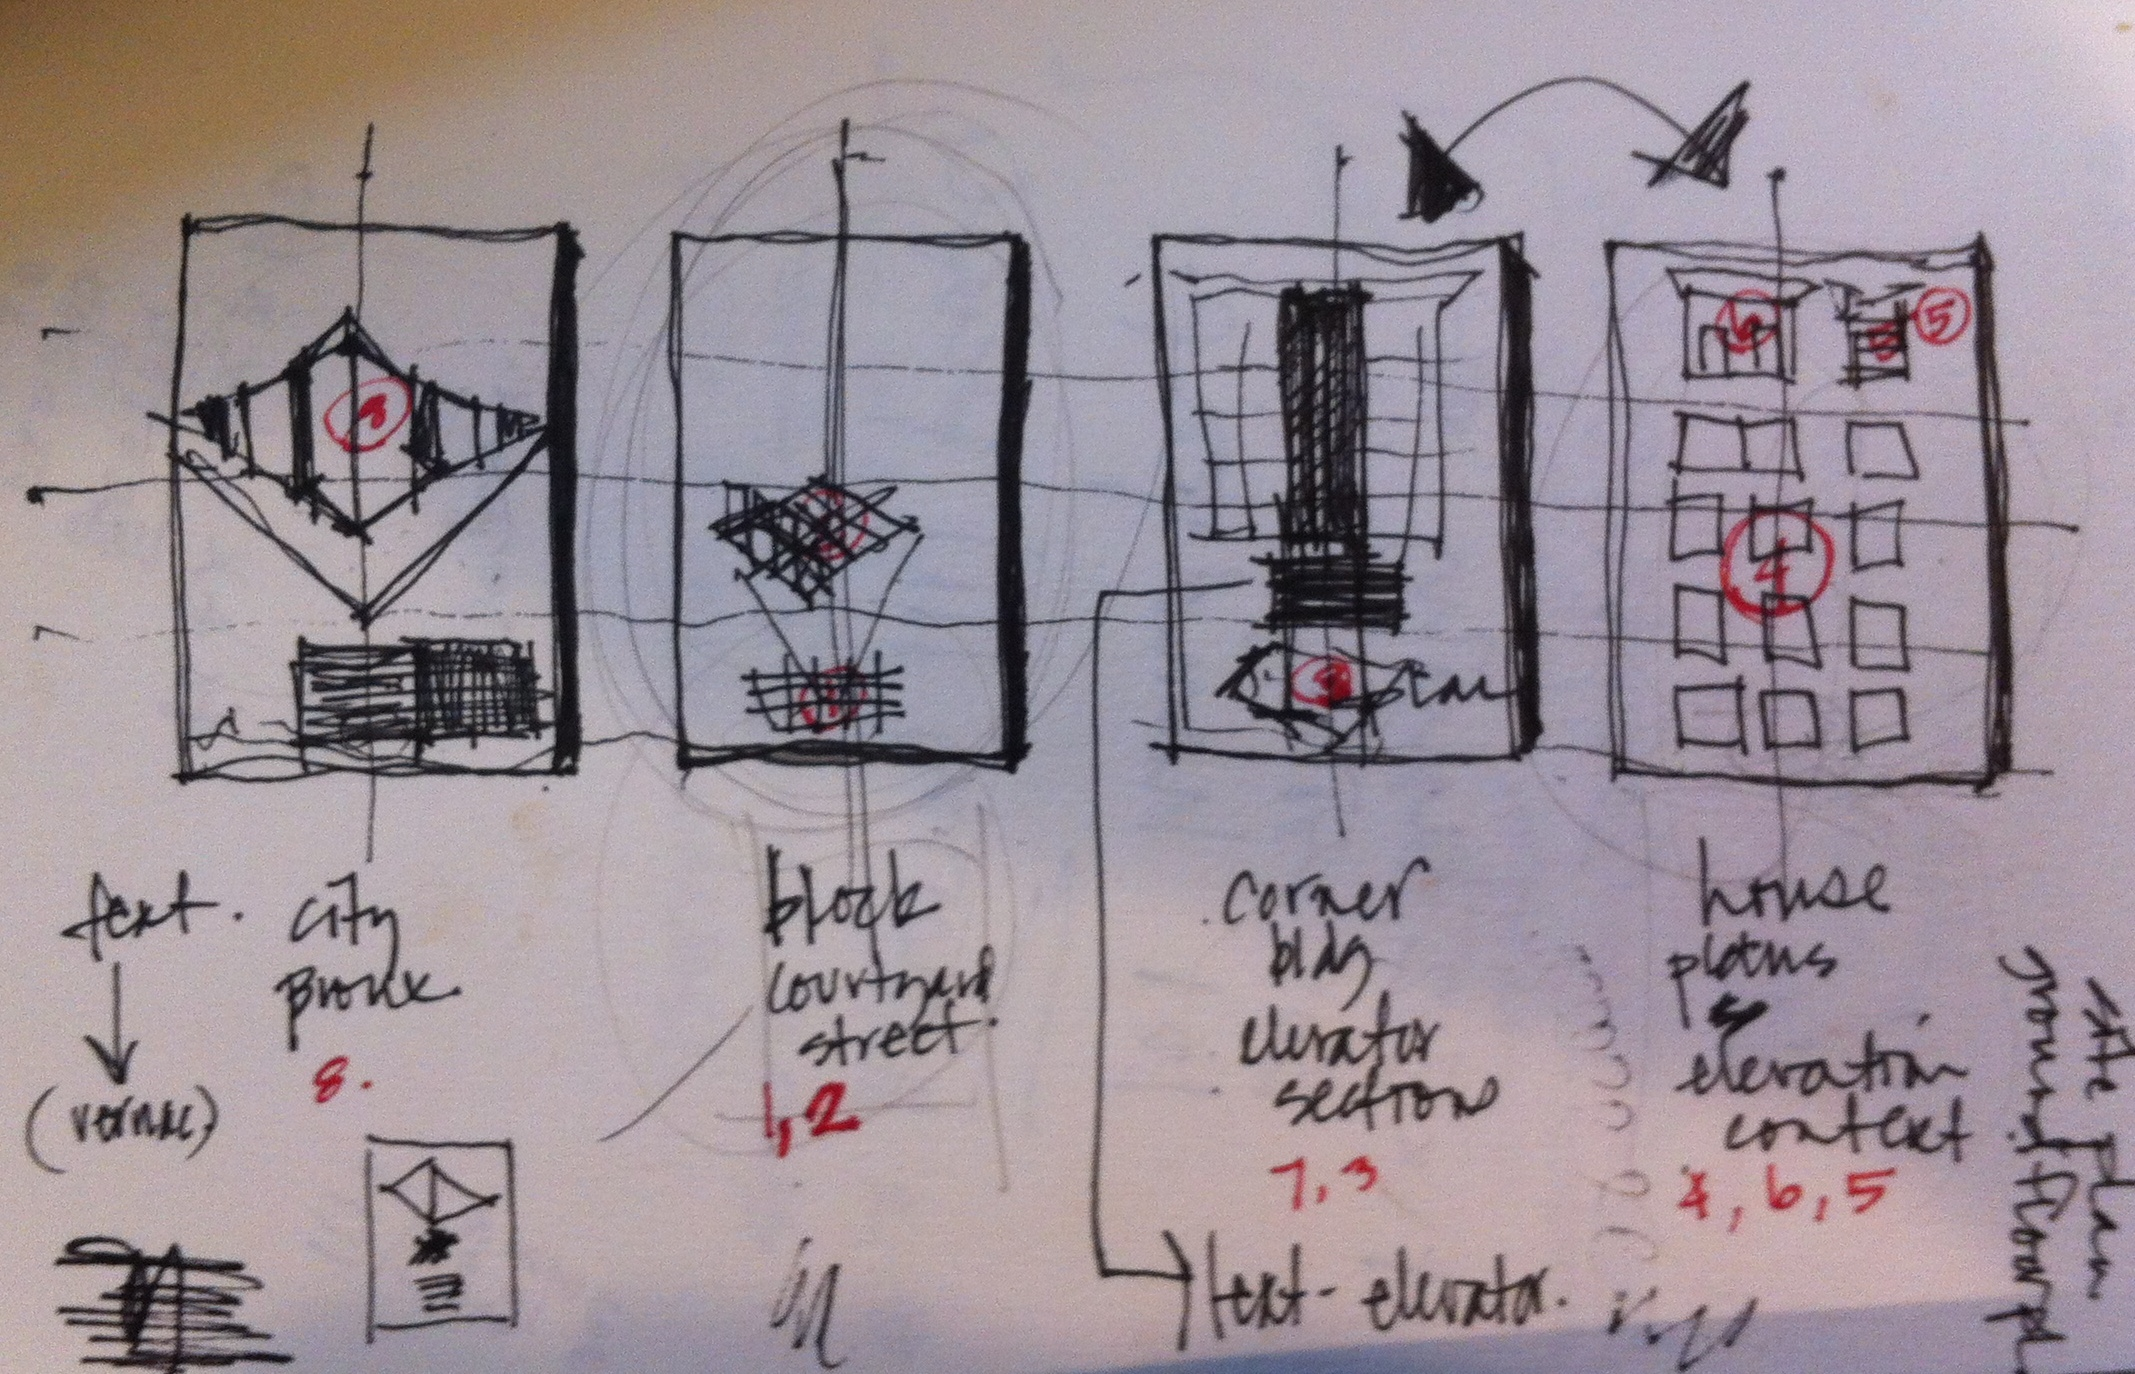 One of many layout sketches of competition boards circa 1993, Virginia Tech.